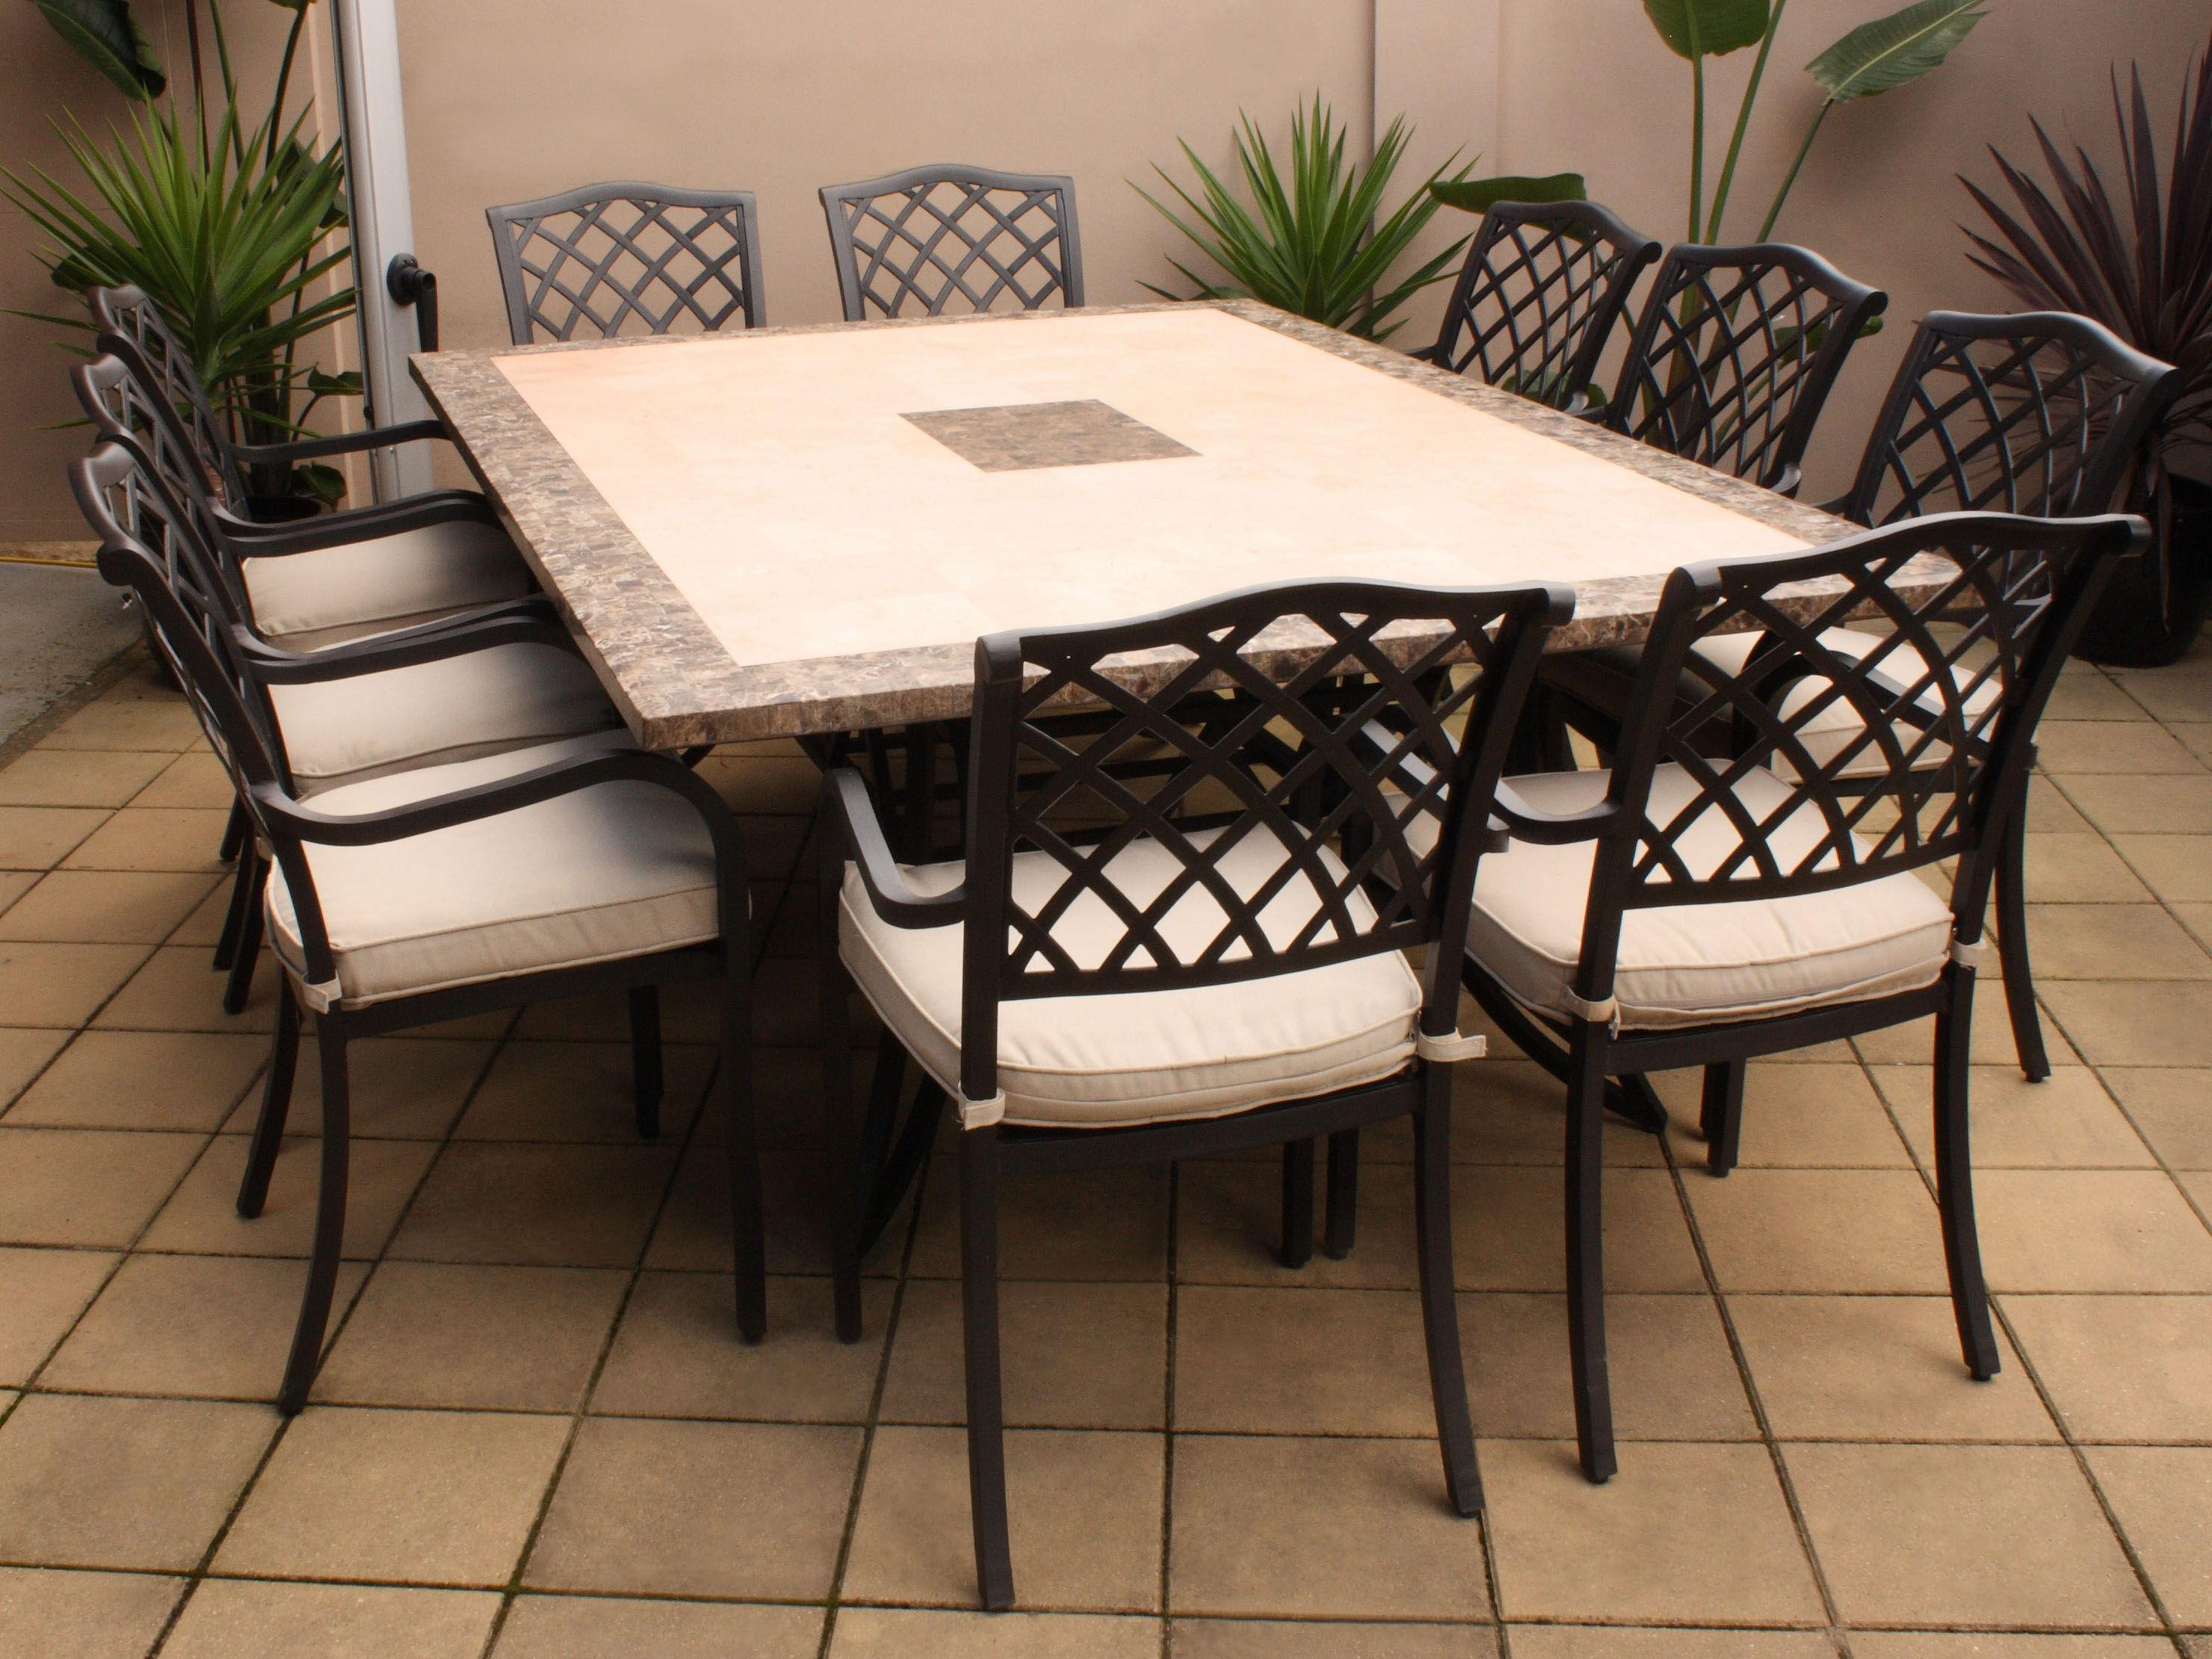 Garden Furniture Houston furniture: dining costco outdoor furniture with black iron cast